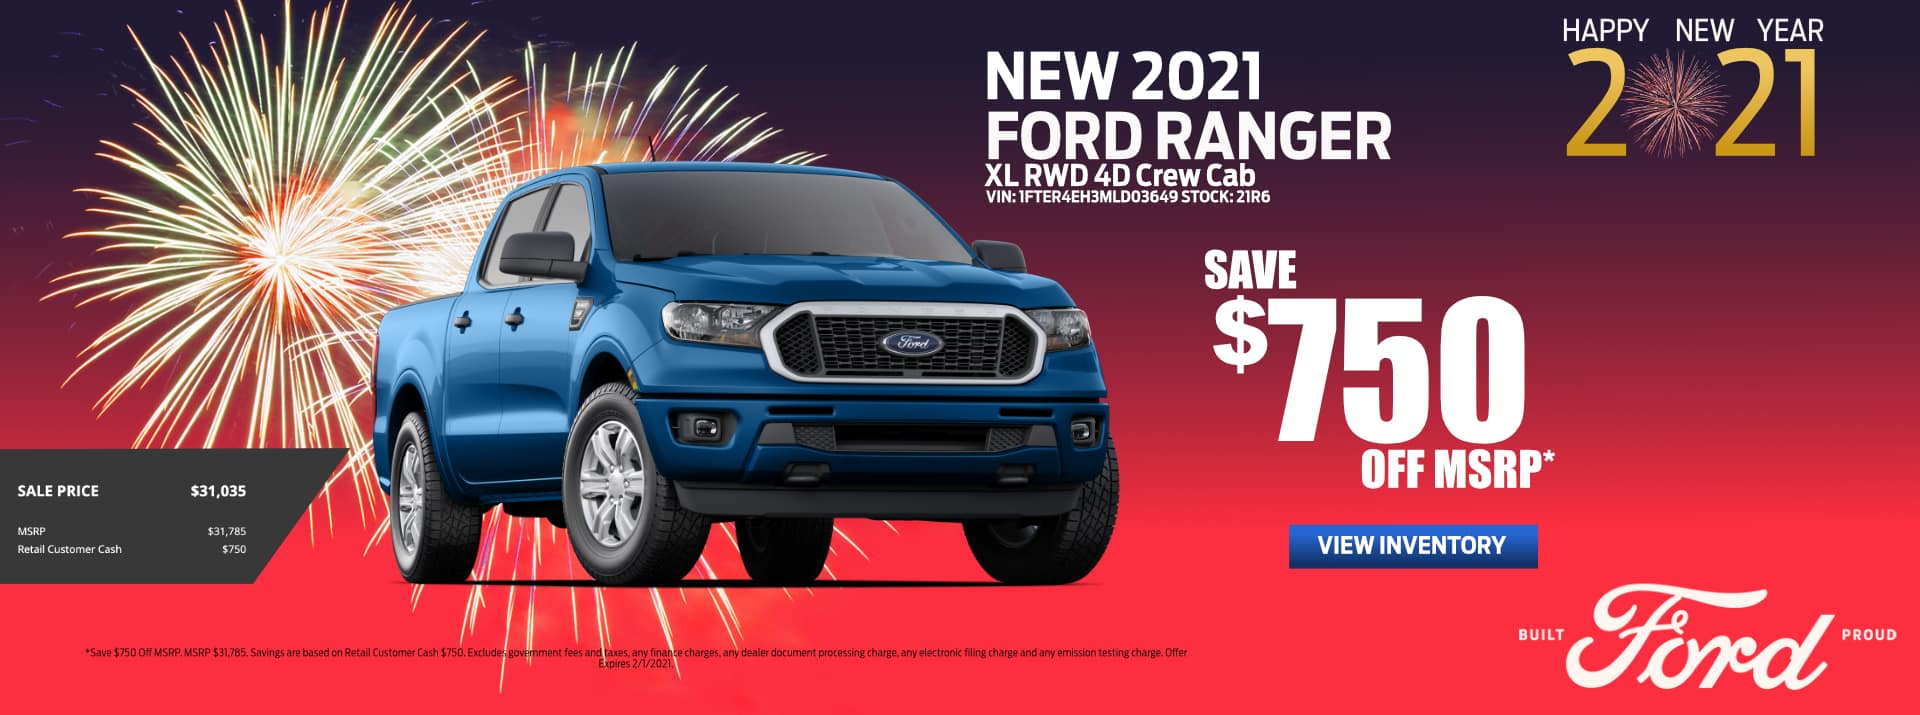 New_January-2021 Ford Ranger_Palm_Springs_Ford